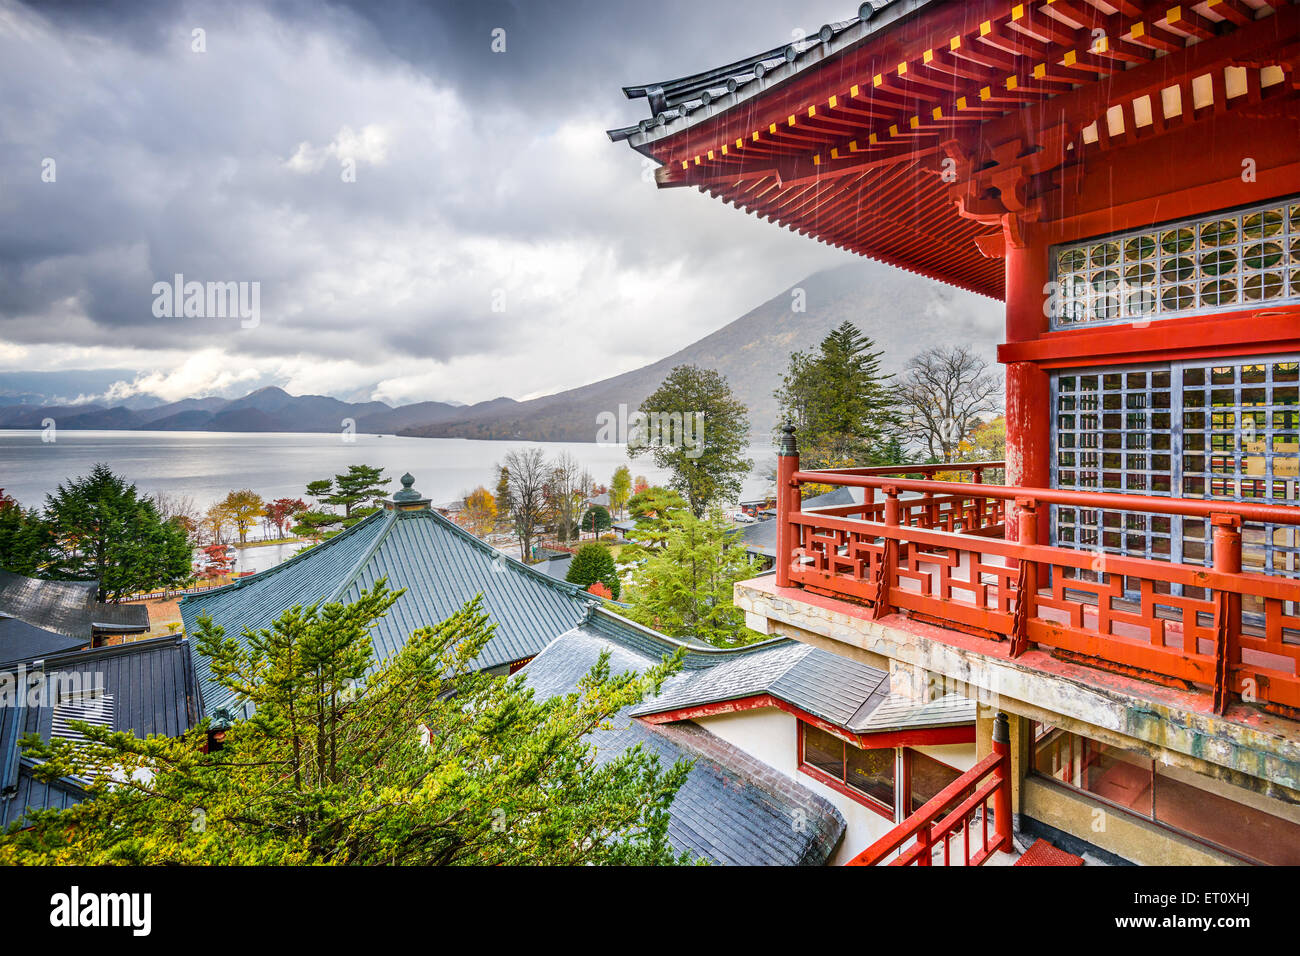 Nikko, Japan viewed in the autumn from Chuzen-ji Temple complex. - Stock Image